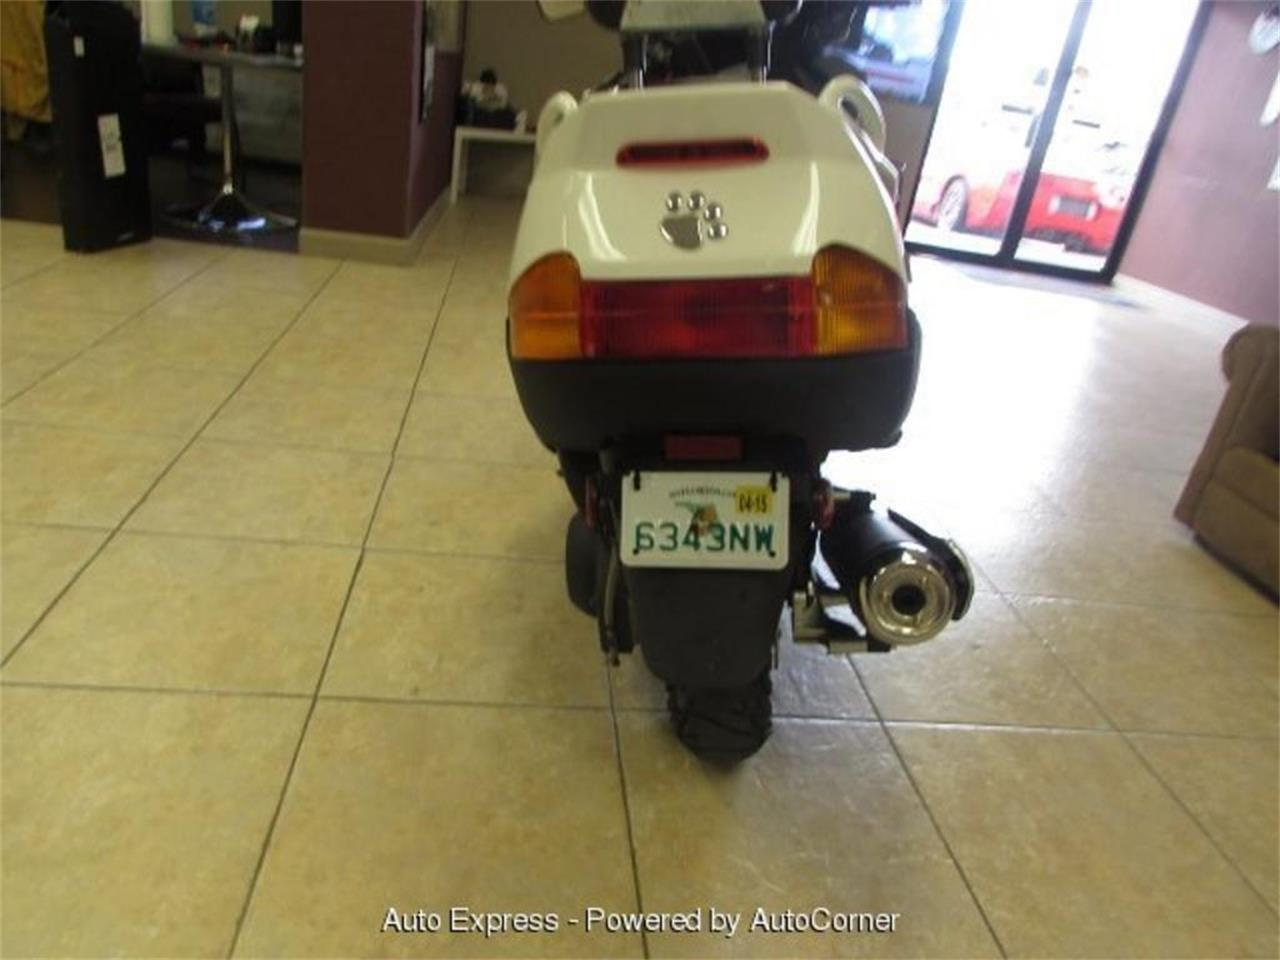 2008 Linhai Scooter for sale in Orlando, FL – photo 5